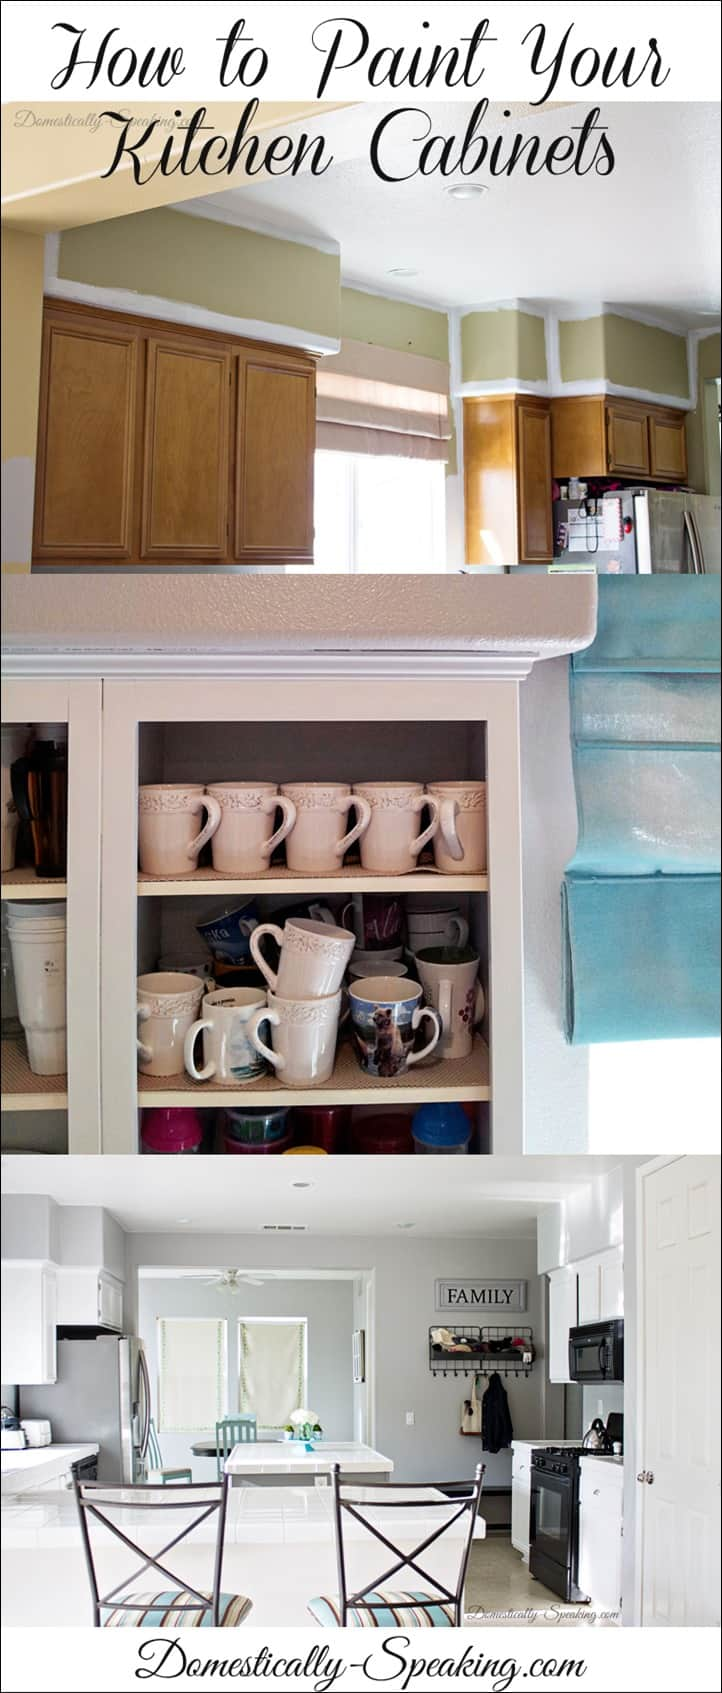 Paint Your Kitchen Cabinets How To Paint Your Kitchen Cabinets Domestically Speaking